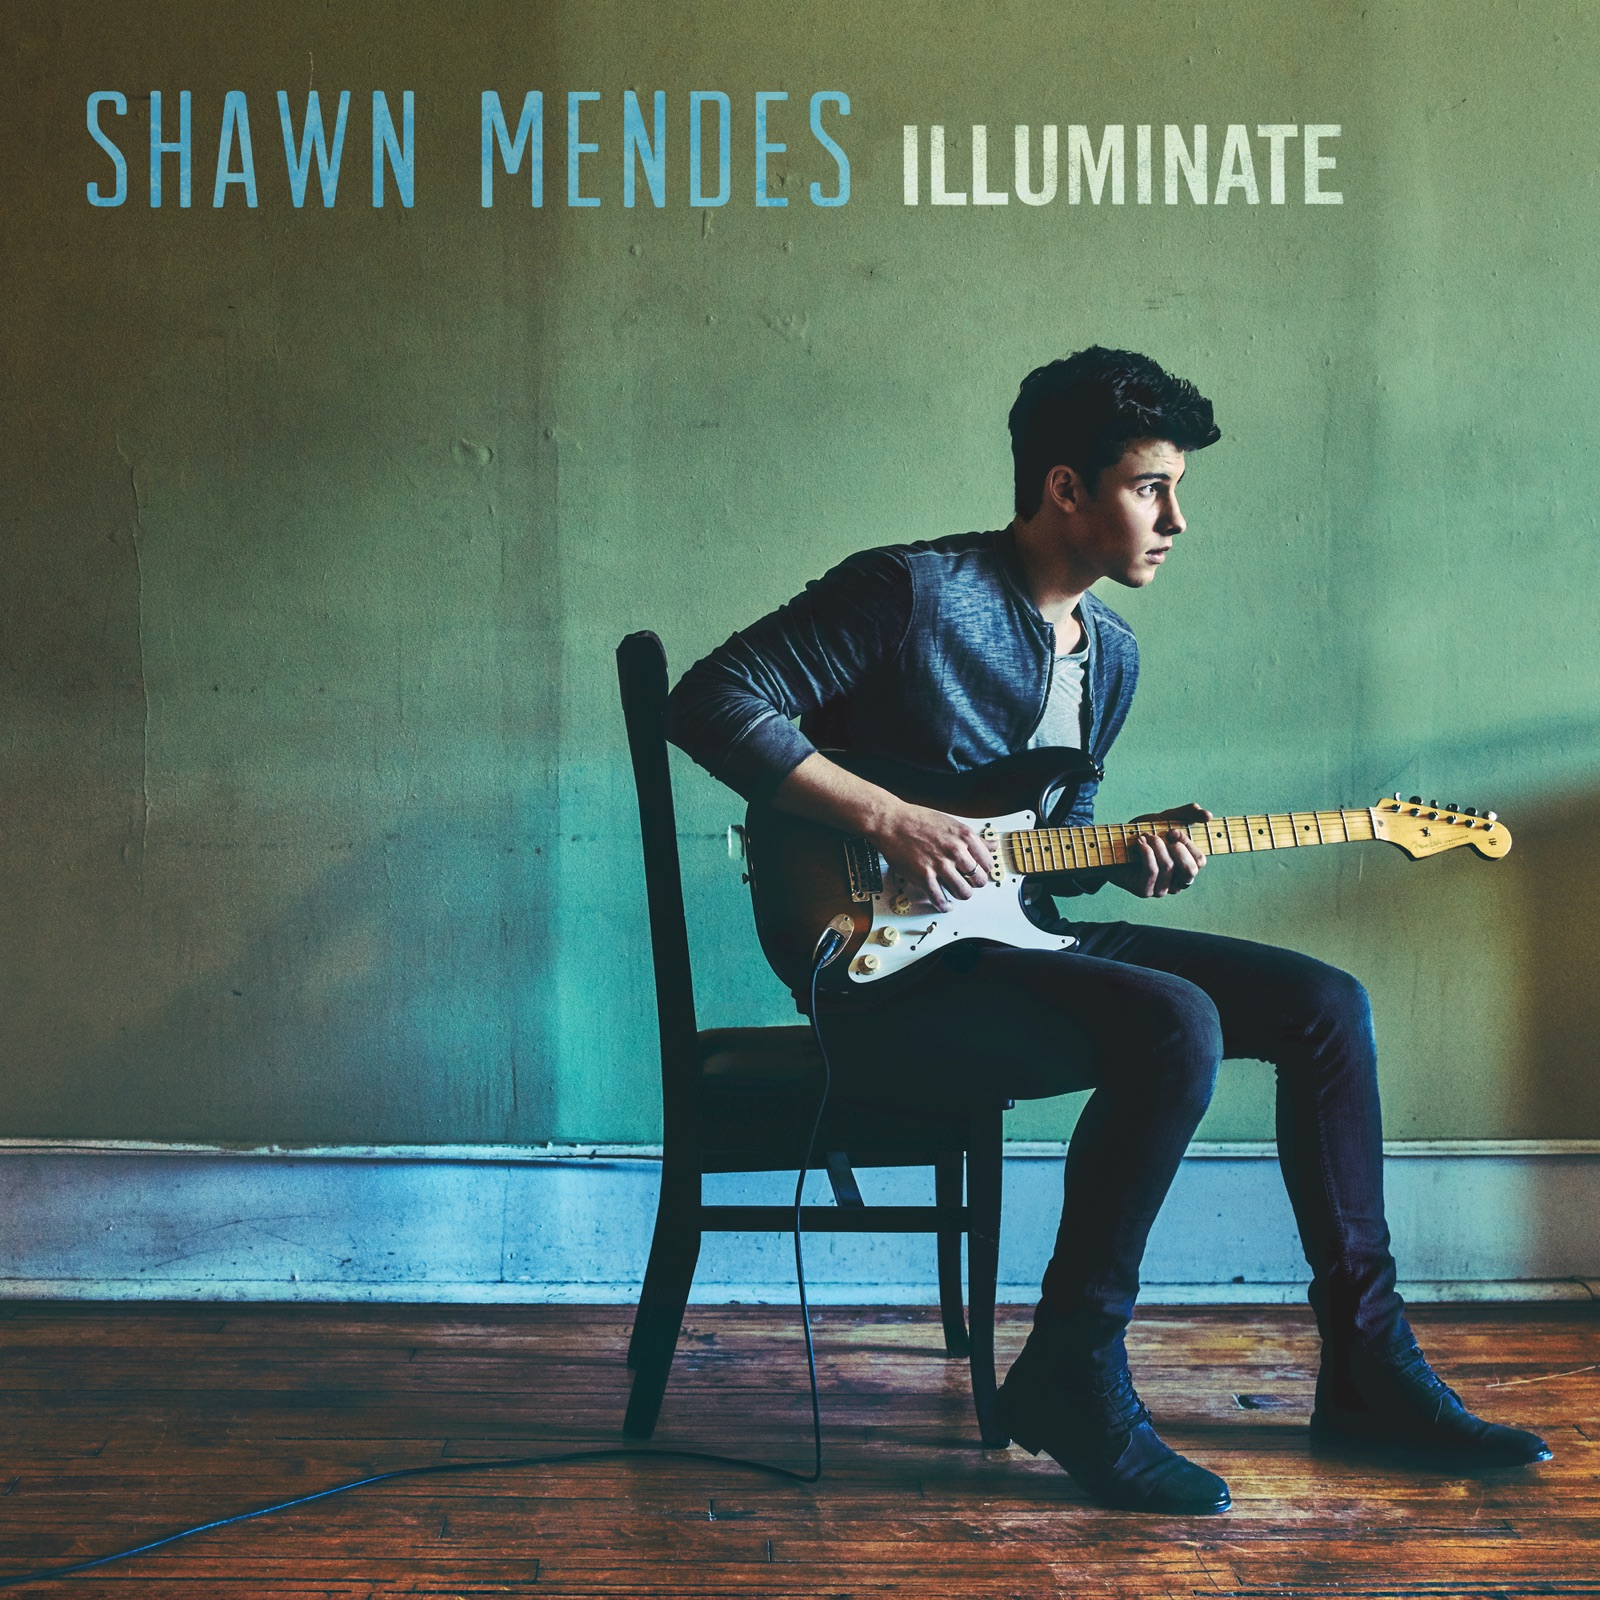 Shawn Mendes - Illuminate (Deluxe) - Album [Mastered for iTunes]